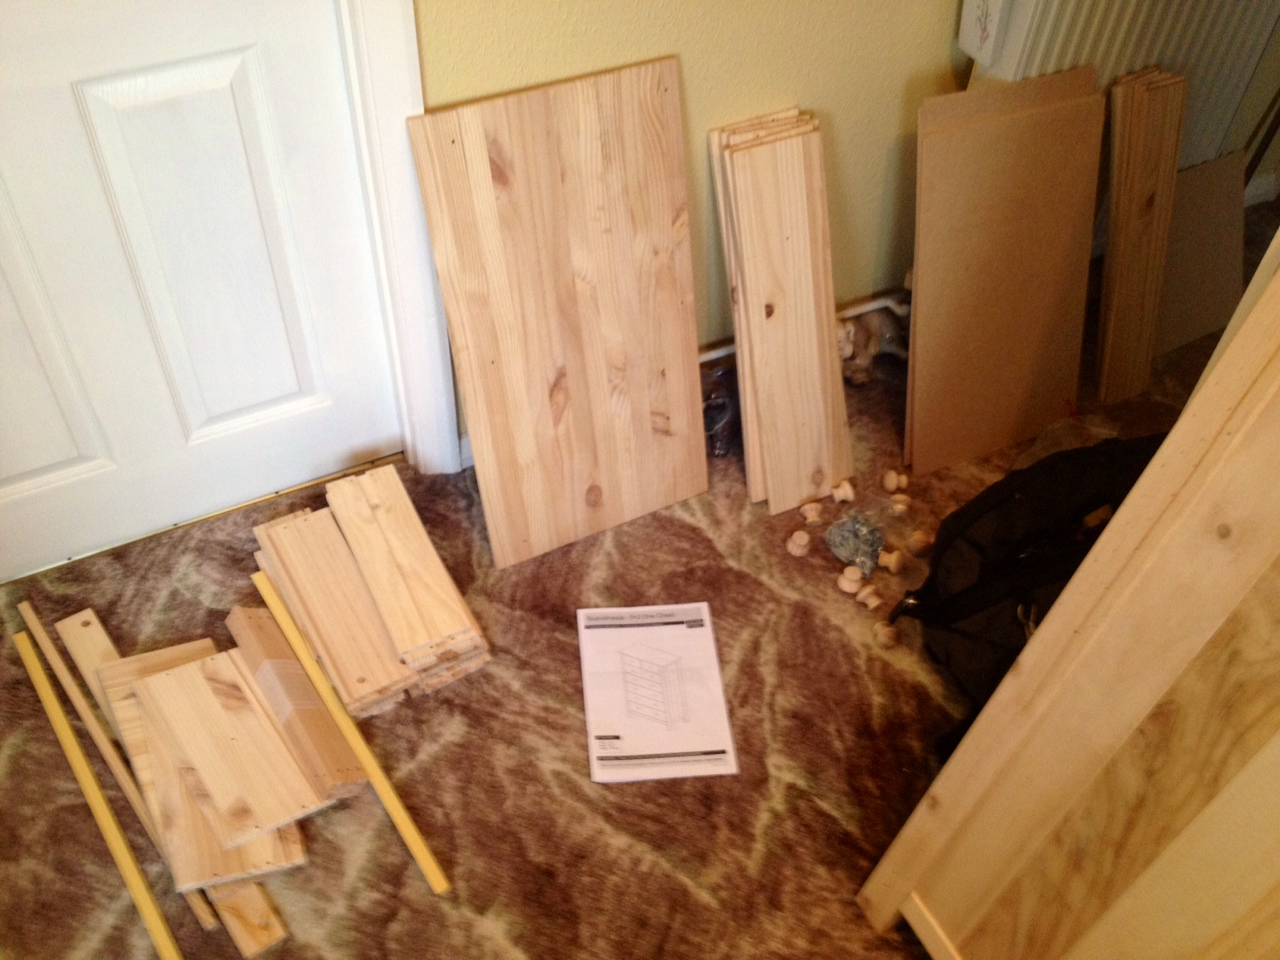 Argos furniture assembly by Flat Pack Dan, Brighton & Hove, Worthing, Eastbourne, Sussex